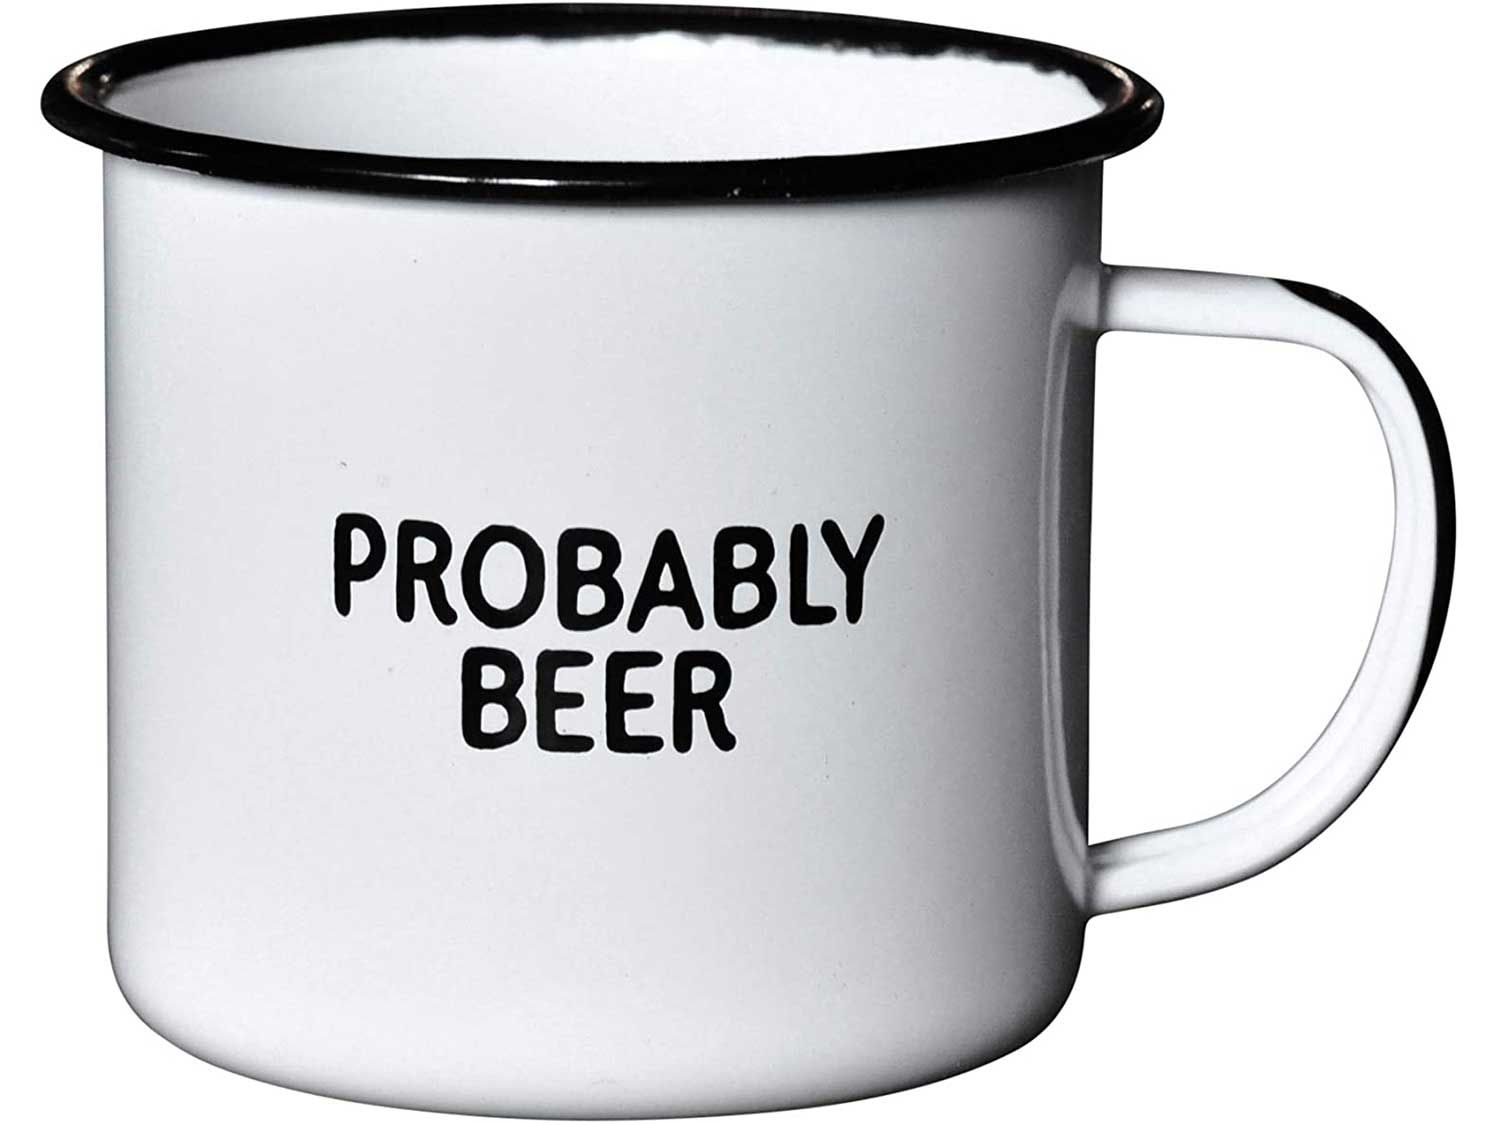 PROBABLY BEER   Enamel Coffee Mug   Funny Home Bar Gift for Beer Lovers, Homebrewers, Men, and Women   Cool Cup for the Office, Kitchen, Campfire, and Travel